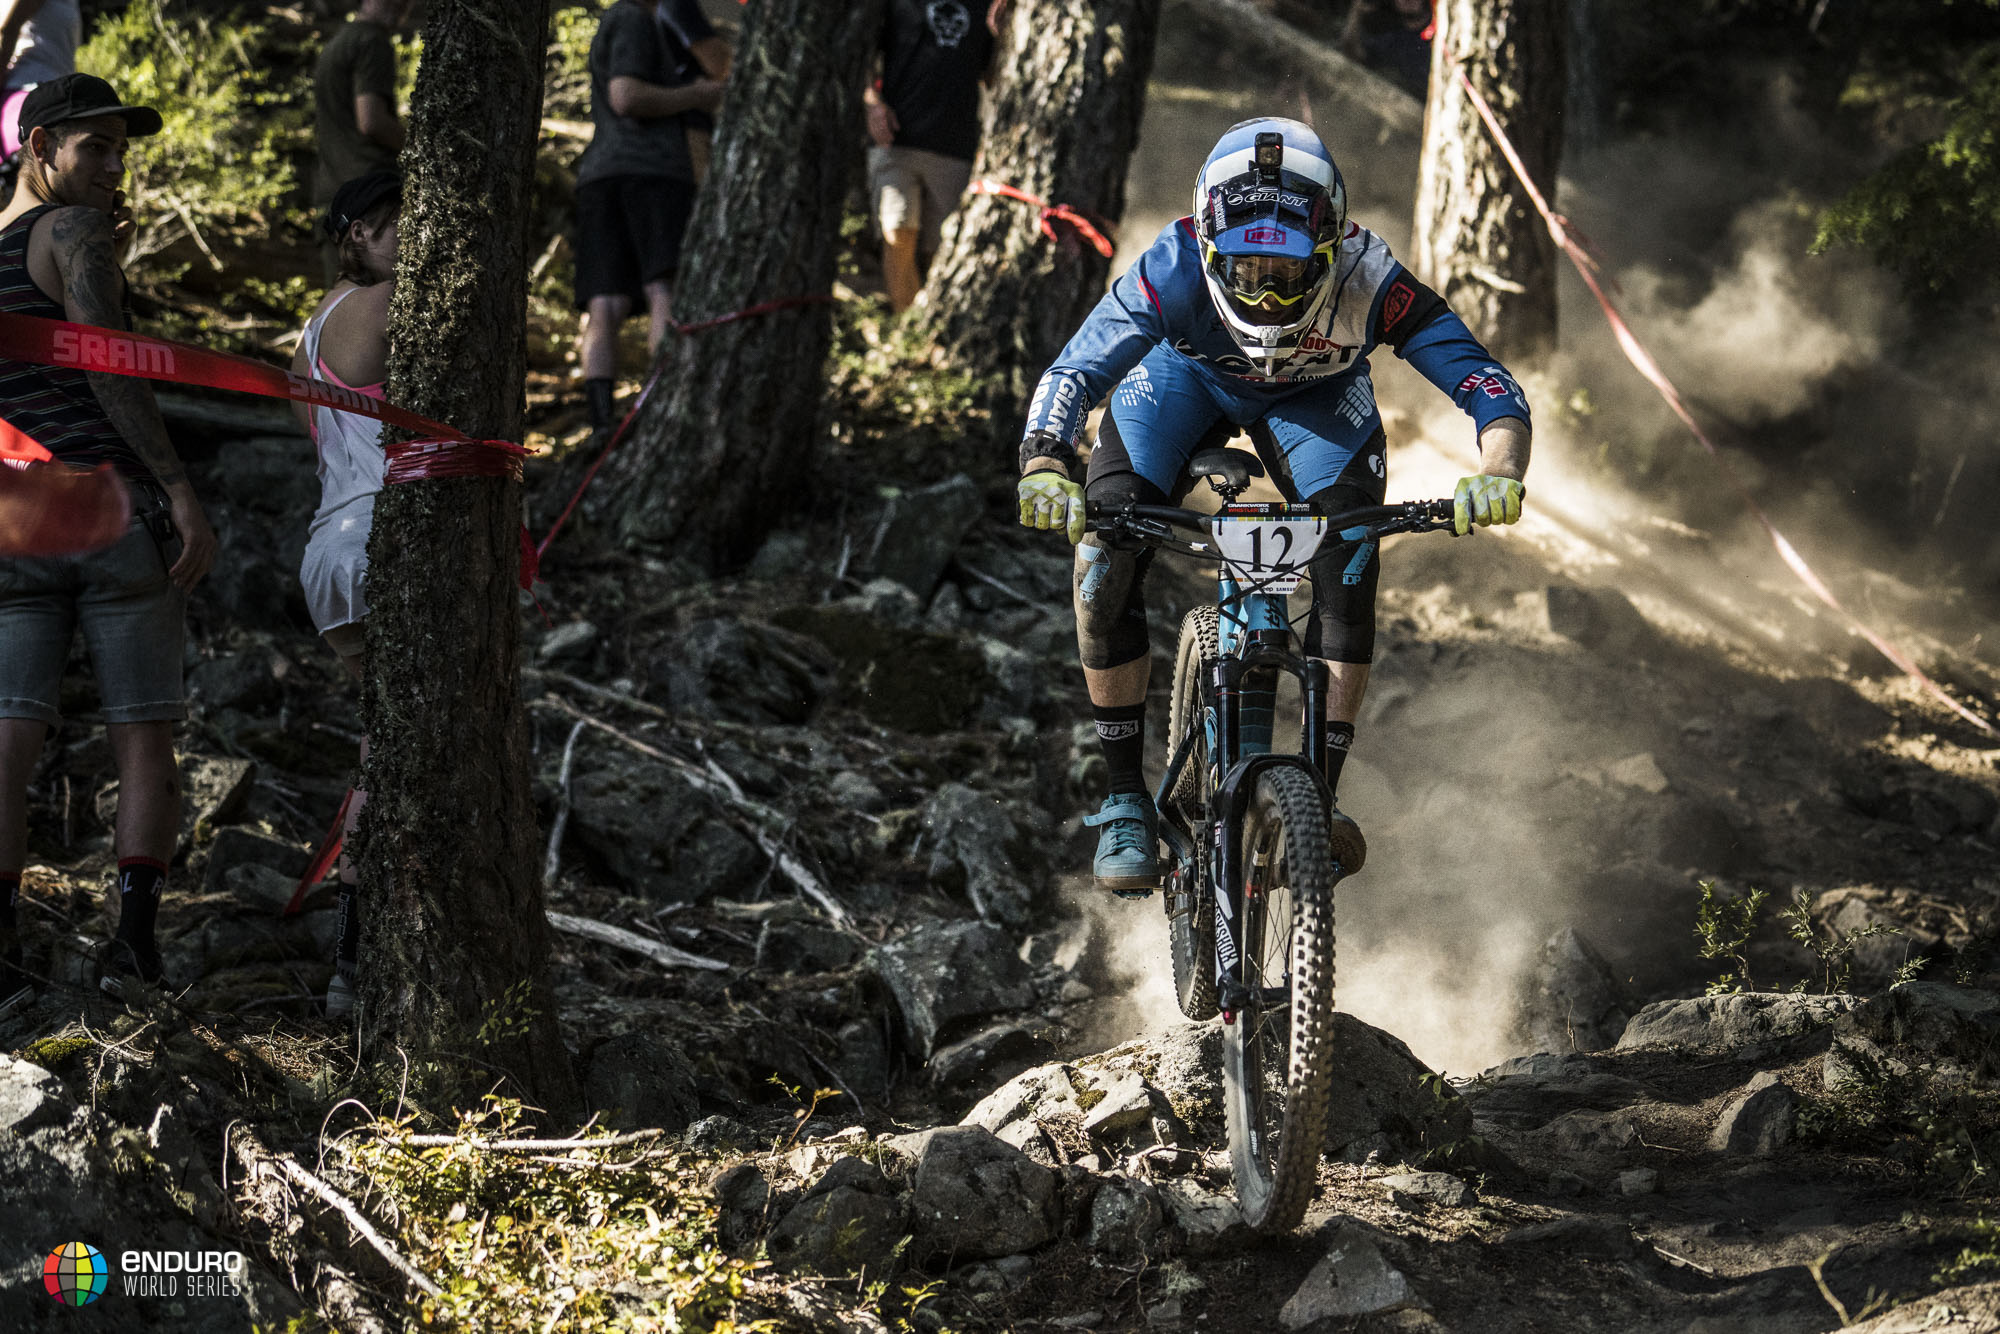 A dust trail follows Carlson on his way to 3rd place today